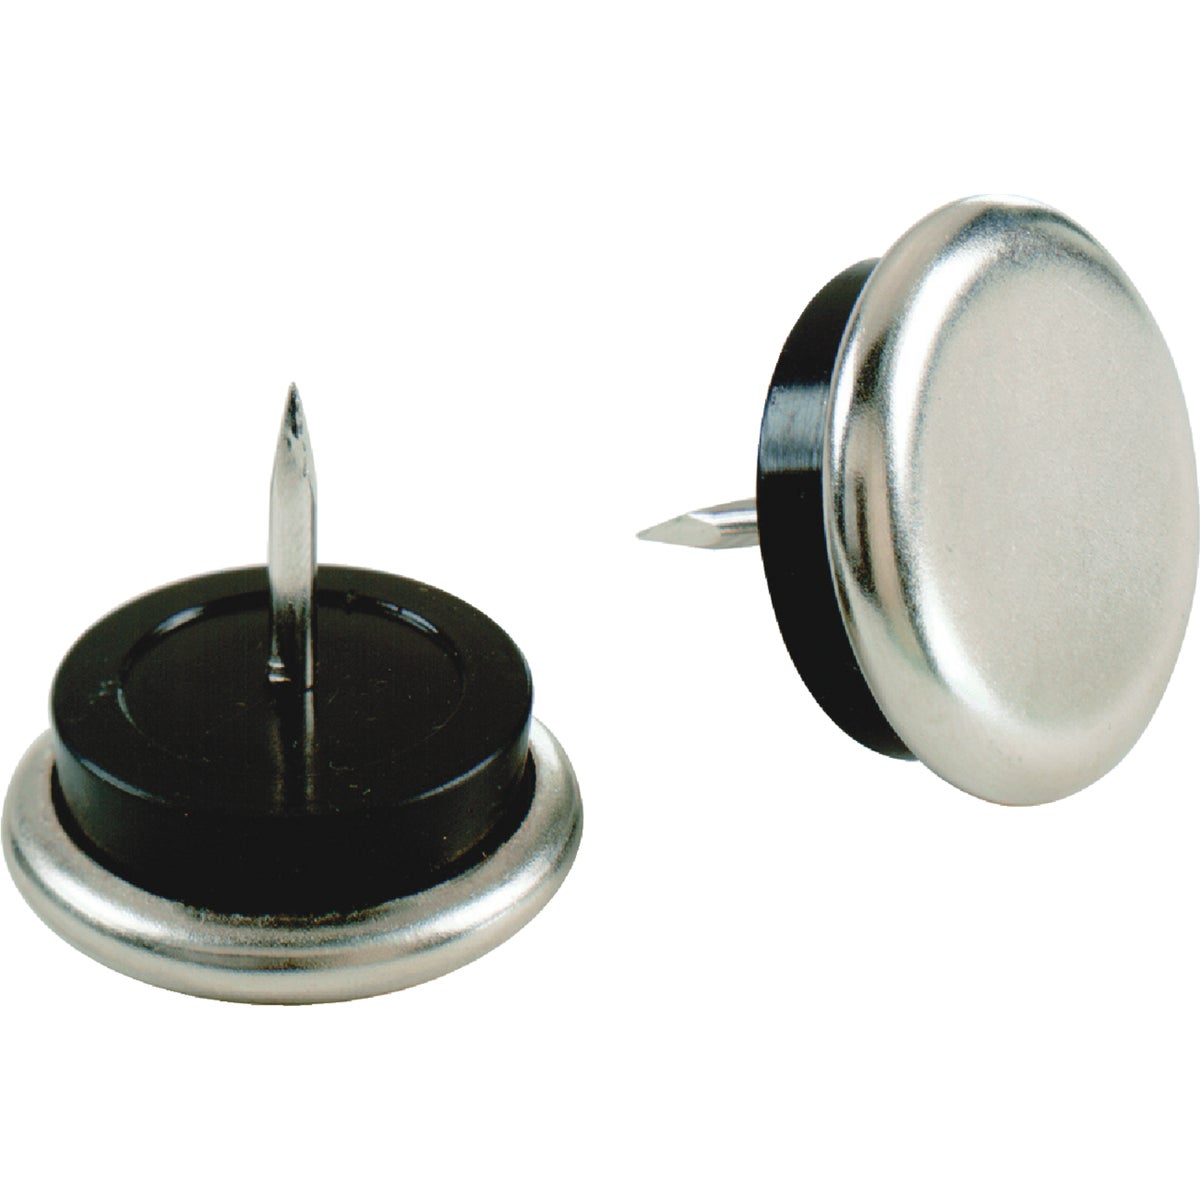 "1-1/16"" NAIL METAL GLIDE - 210242 by Shepherd Hardware"